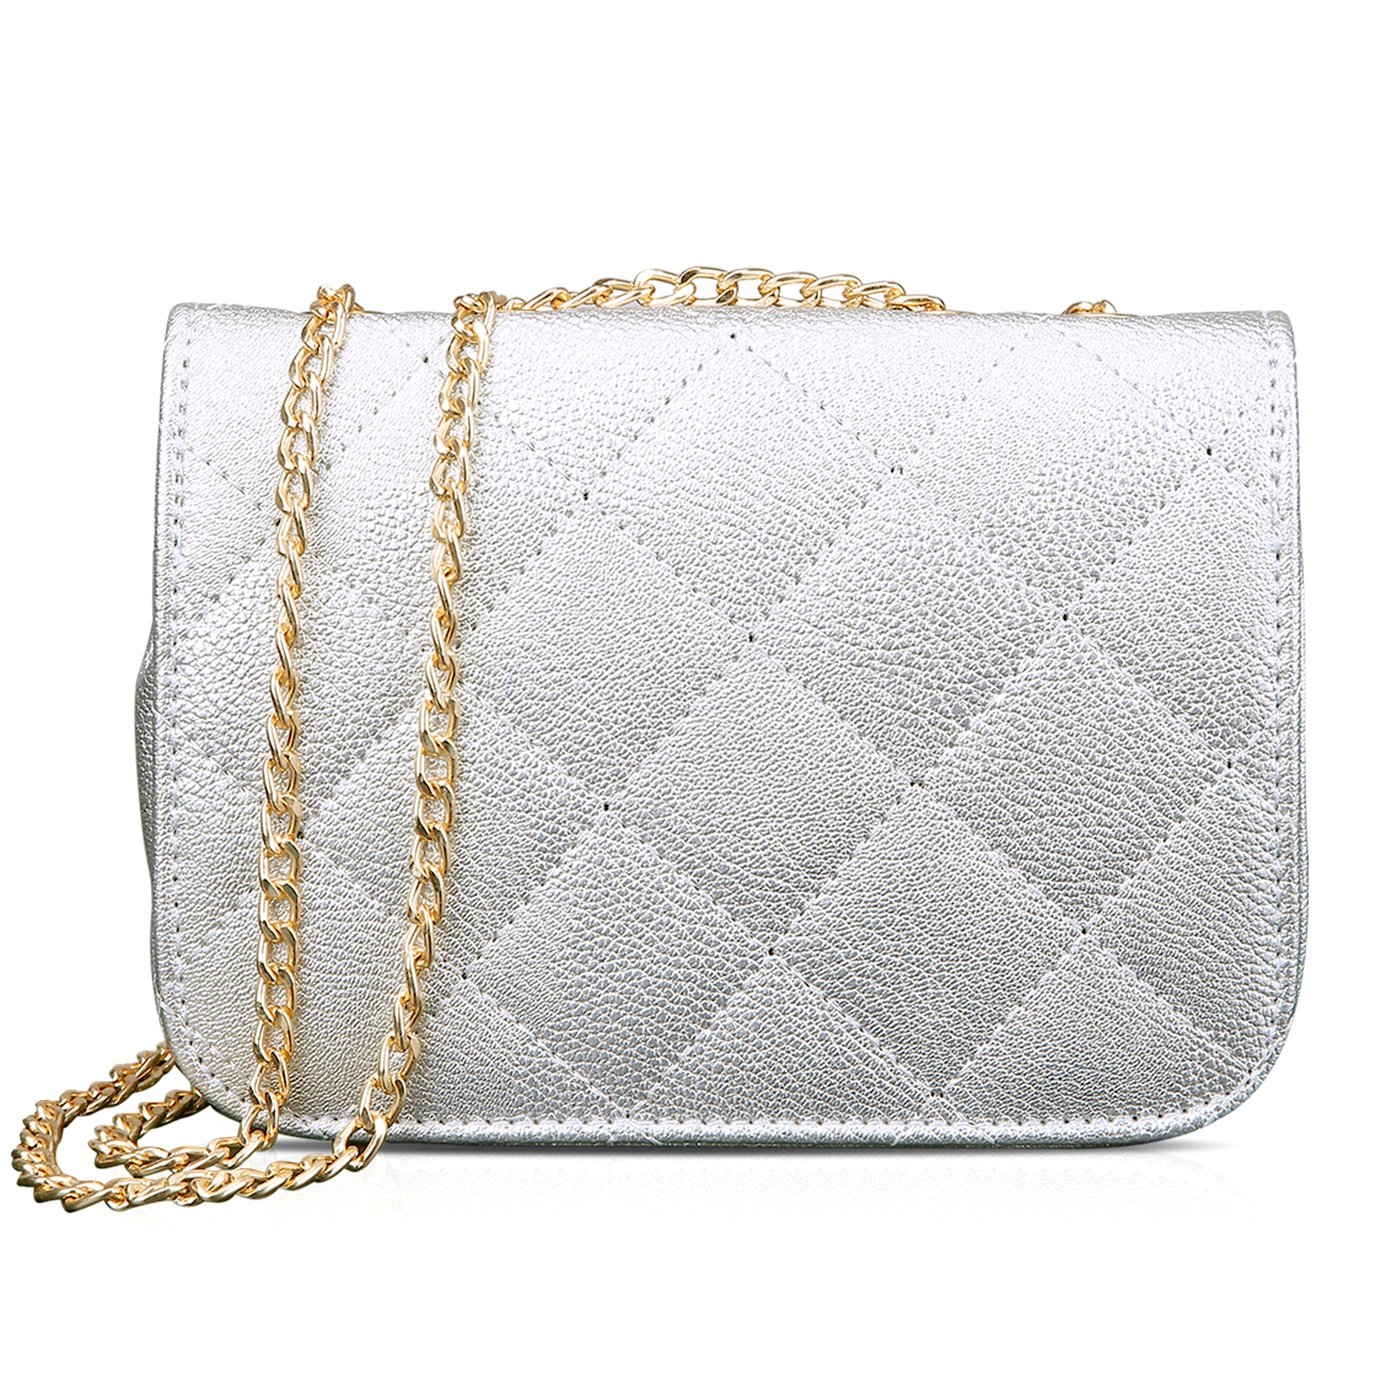 HDE Women's Small Crossbody Handbag Purse Bag with Chain Shoulder Strap (Silver) by HDE (Image #3)